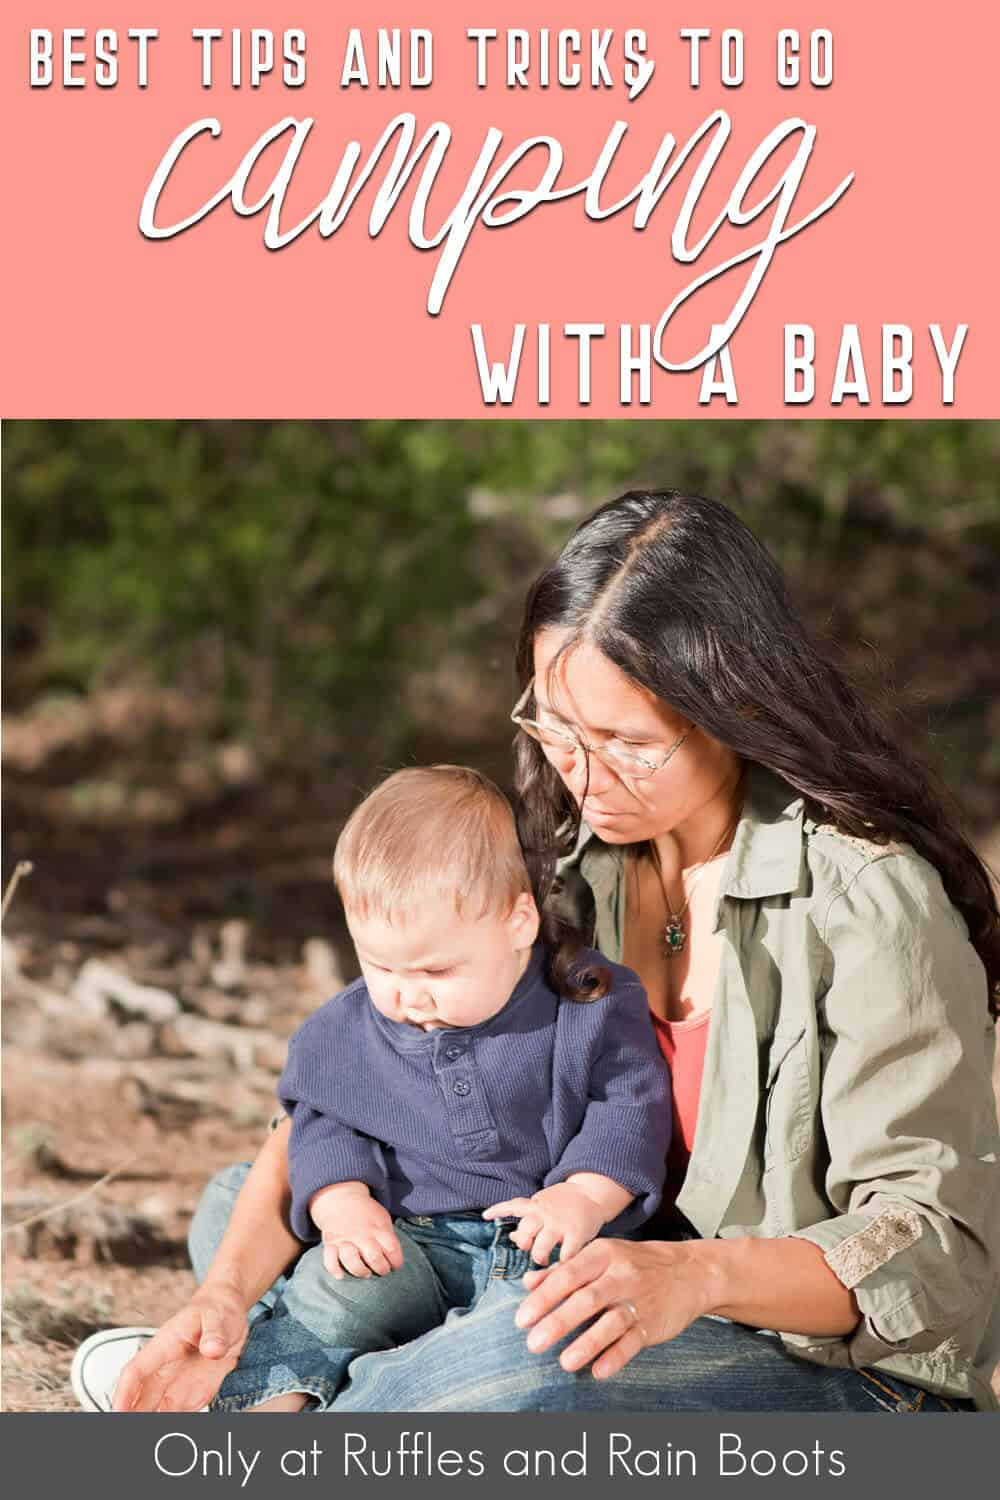 hacks to take a baby camping with text which reads best tips and tricks to go camping with a bab